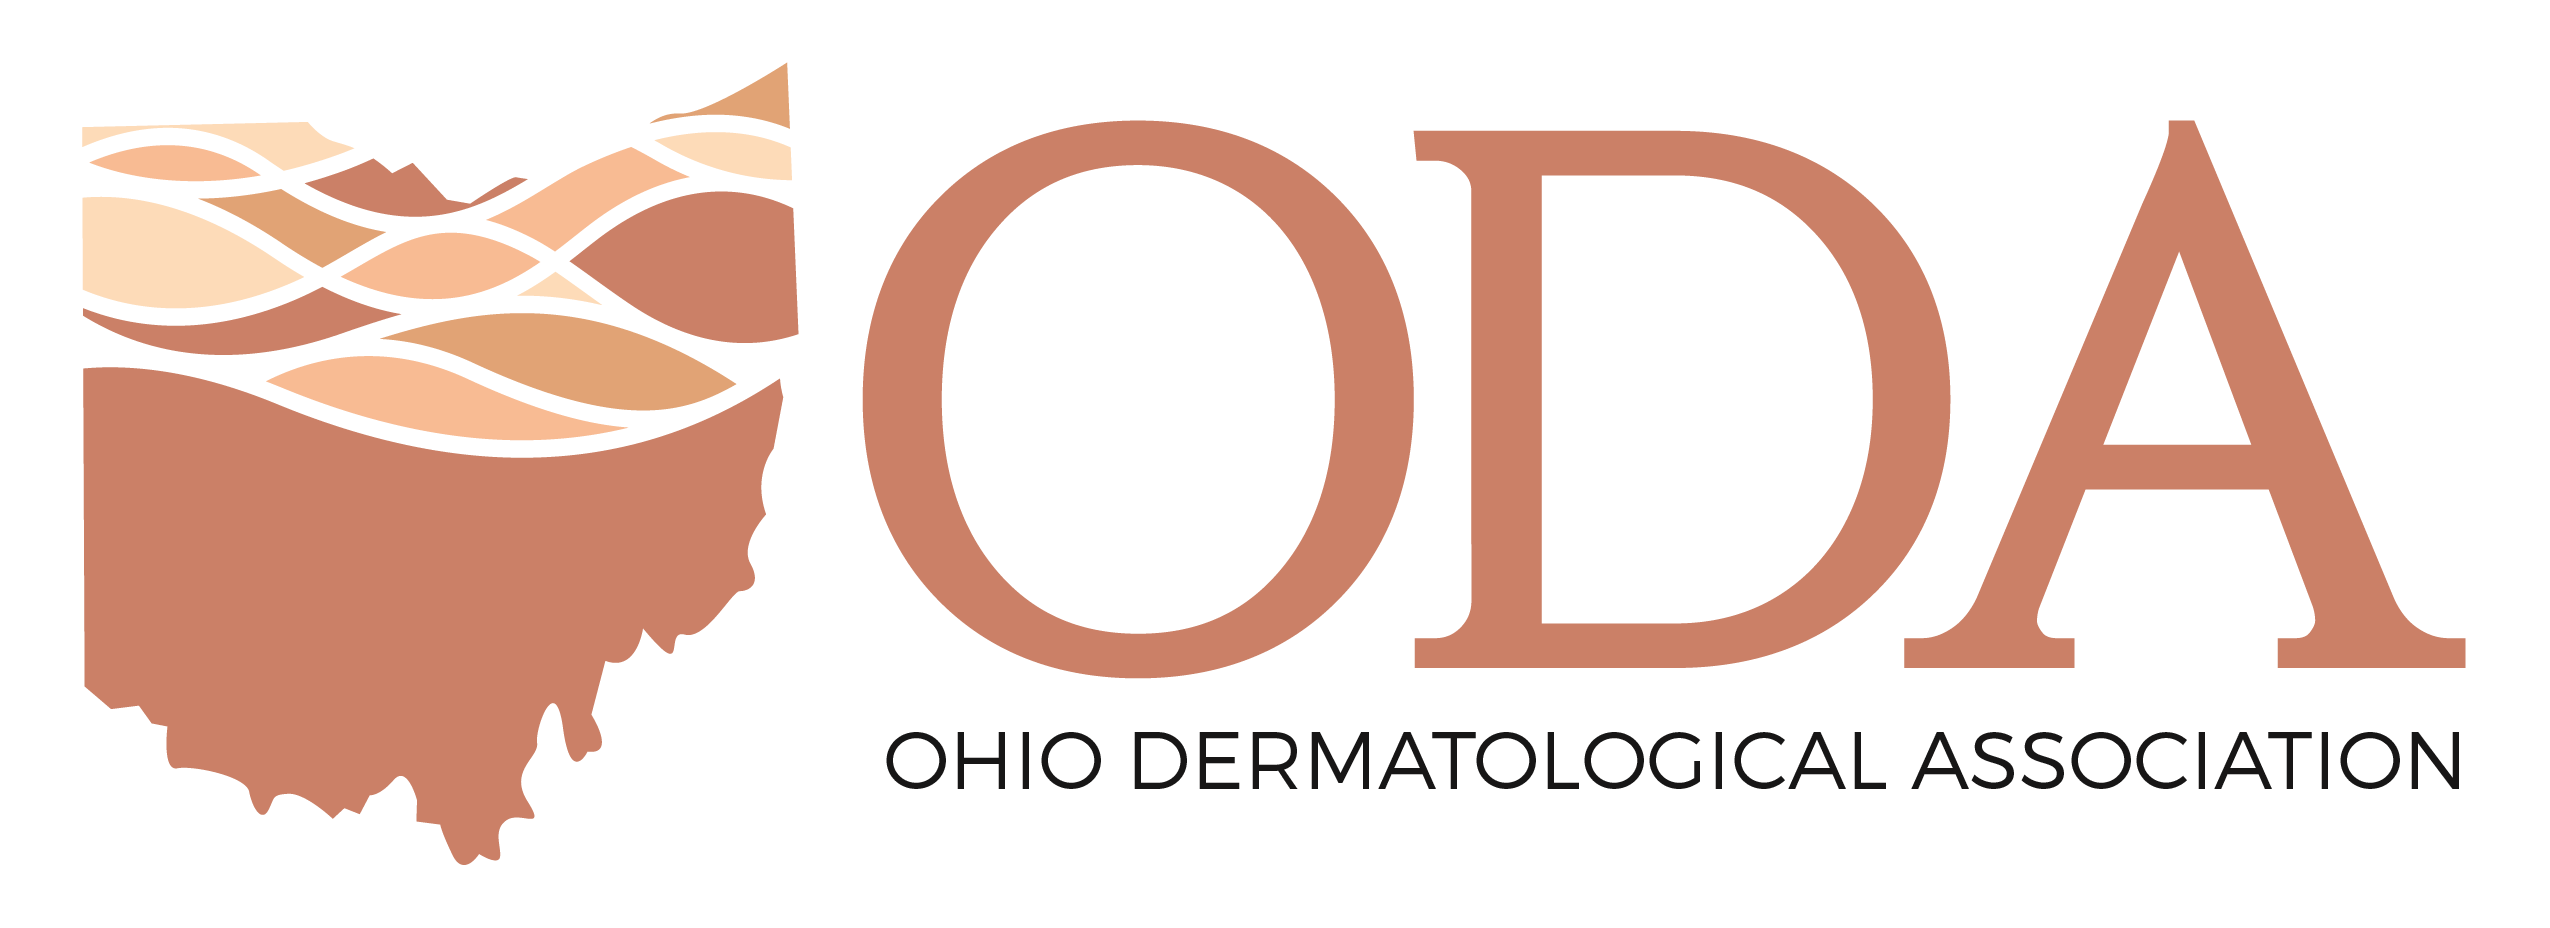 People | Ohio Dermatological Association